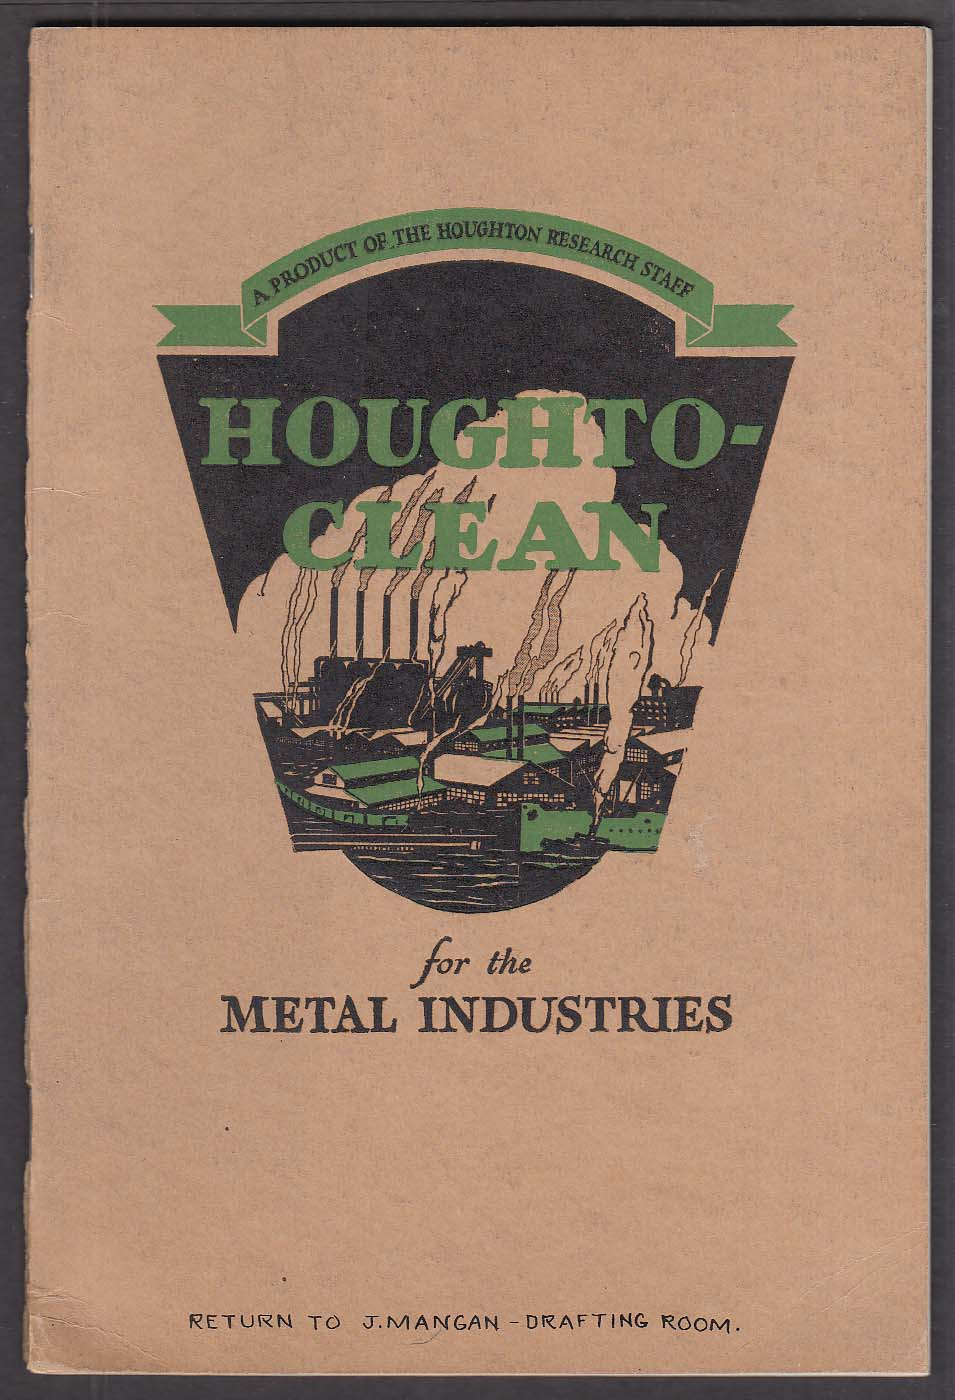 Houghton Houghto-Clean Metal Cleaning Manual 1931